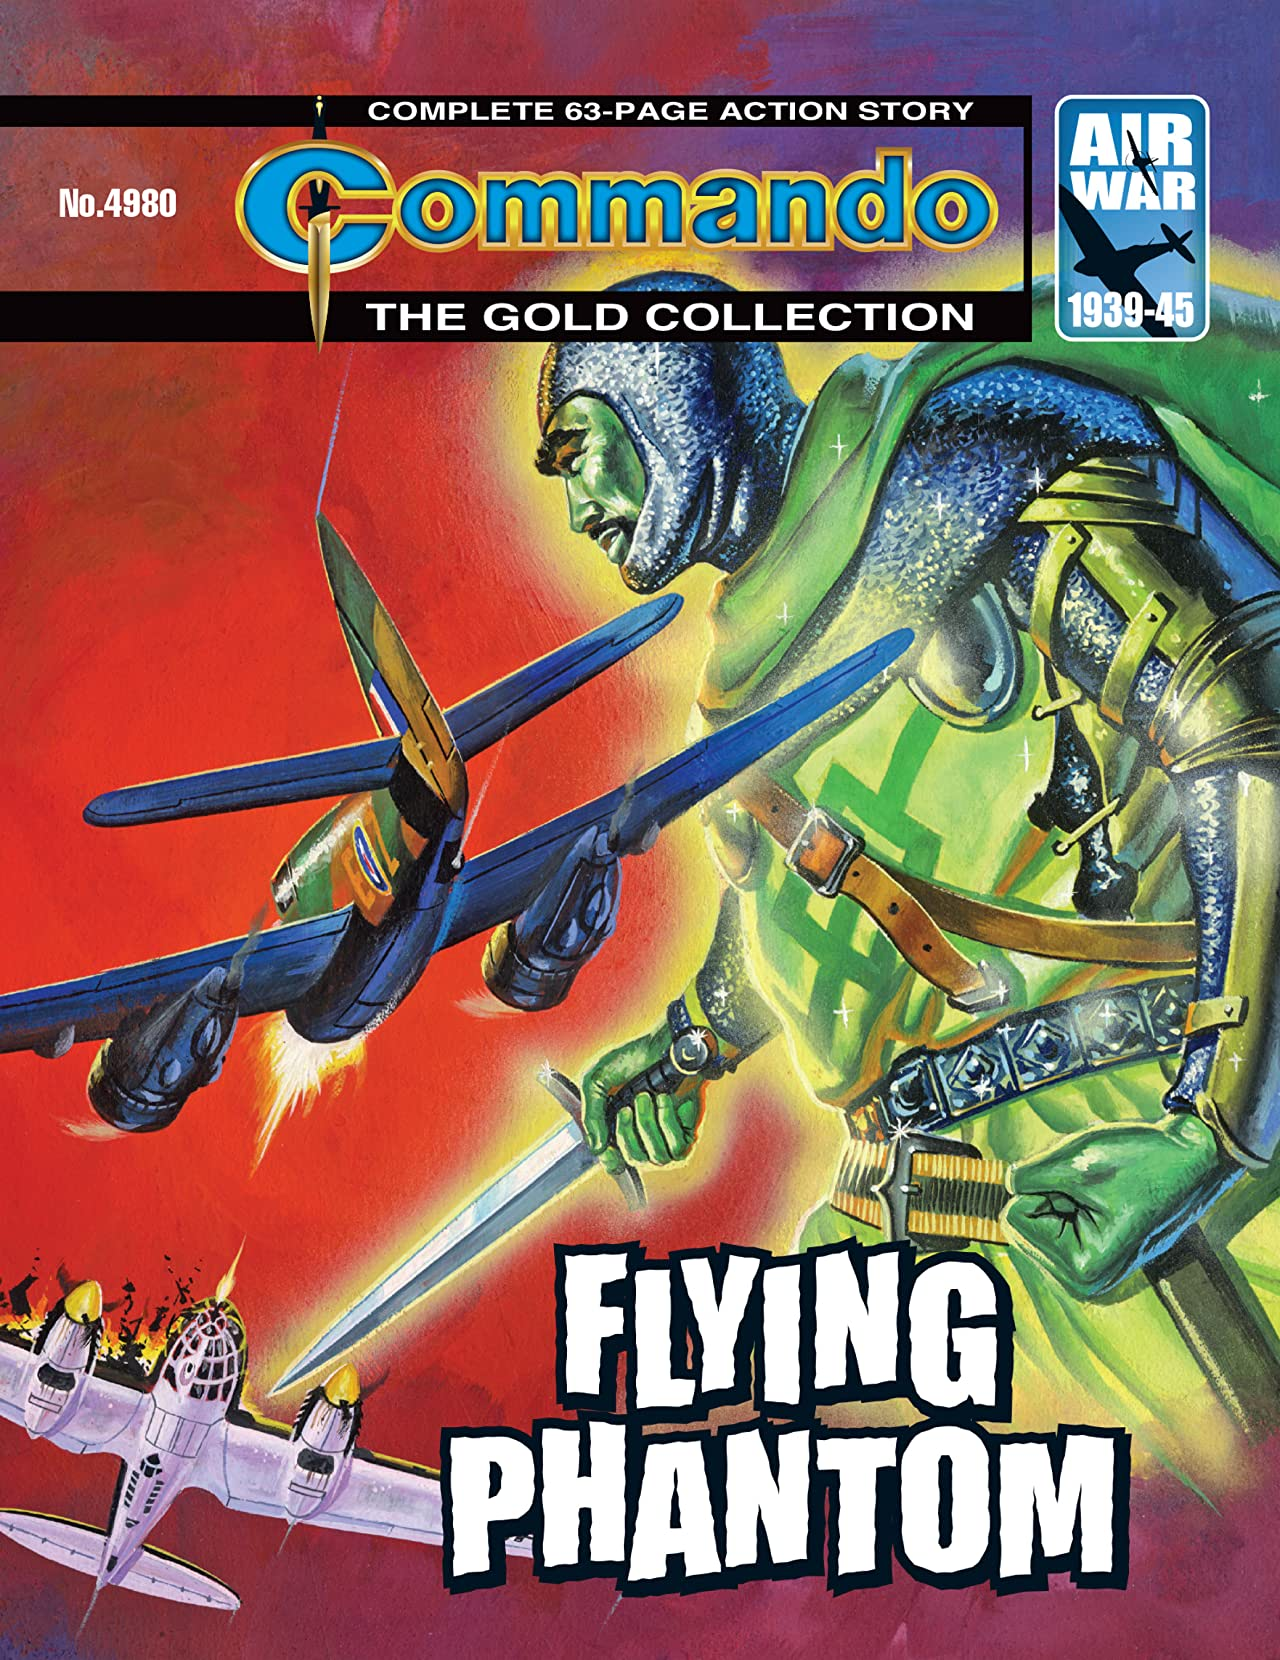 Commando #4980: Flying Phantom